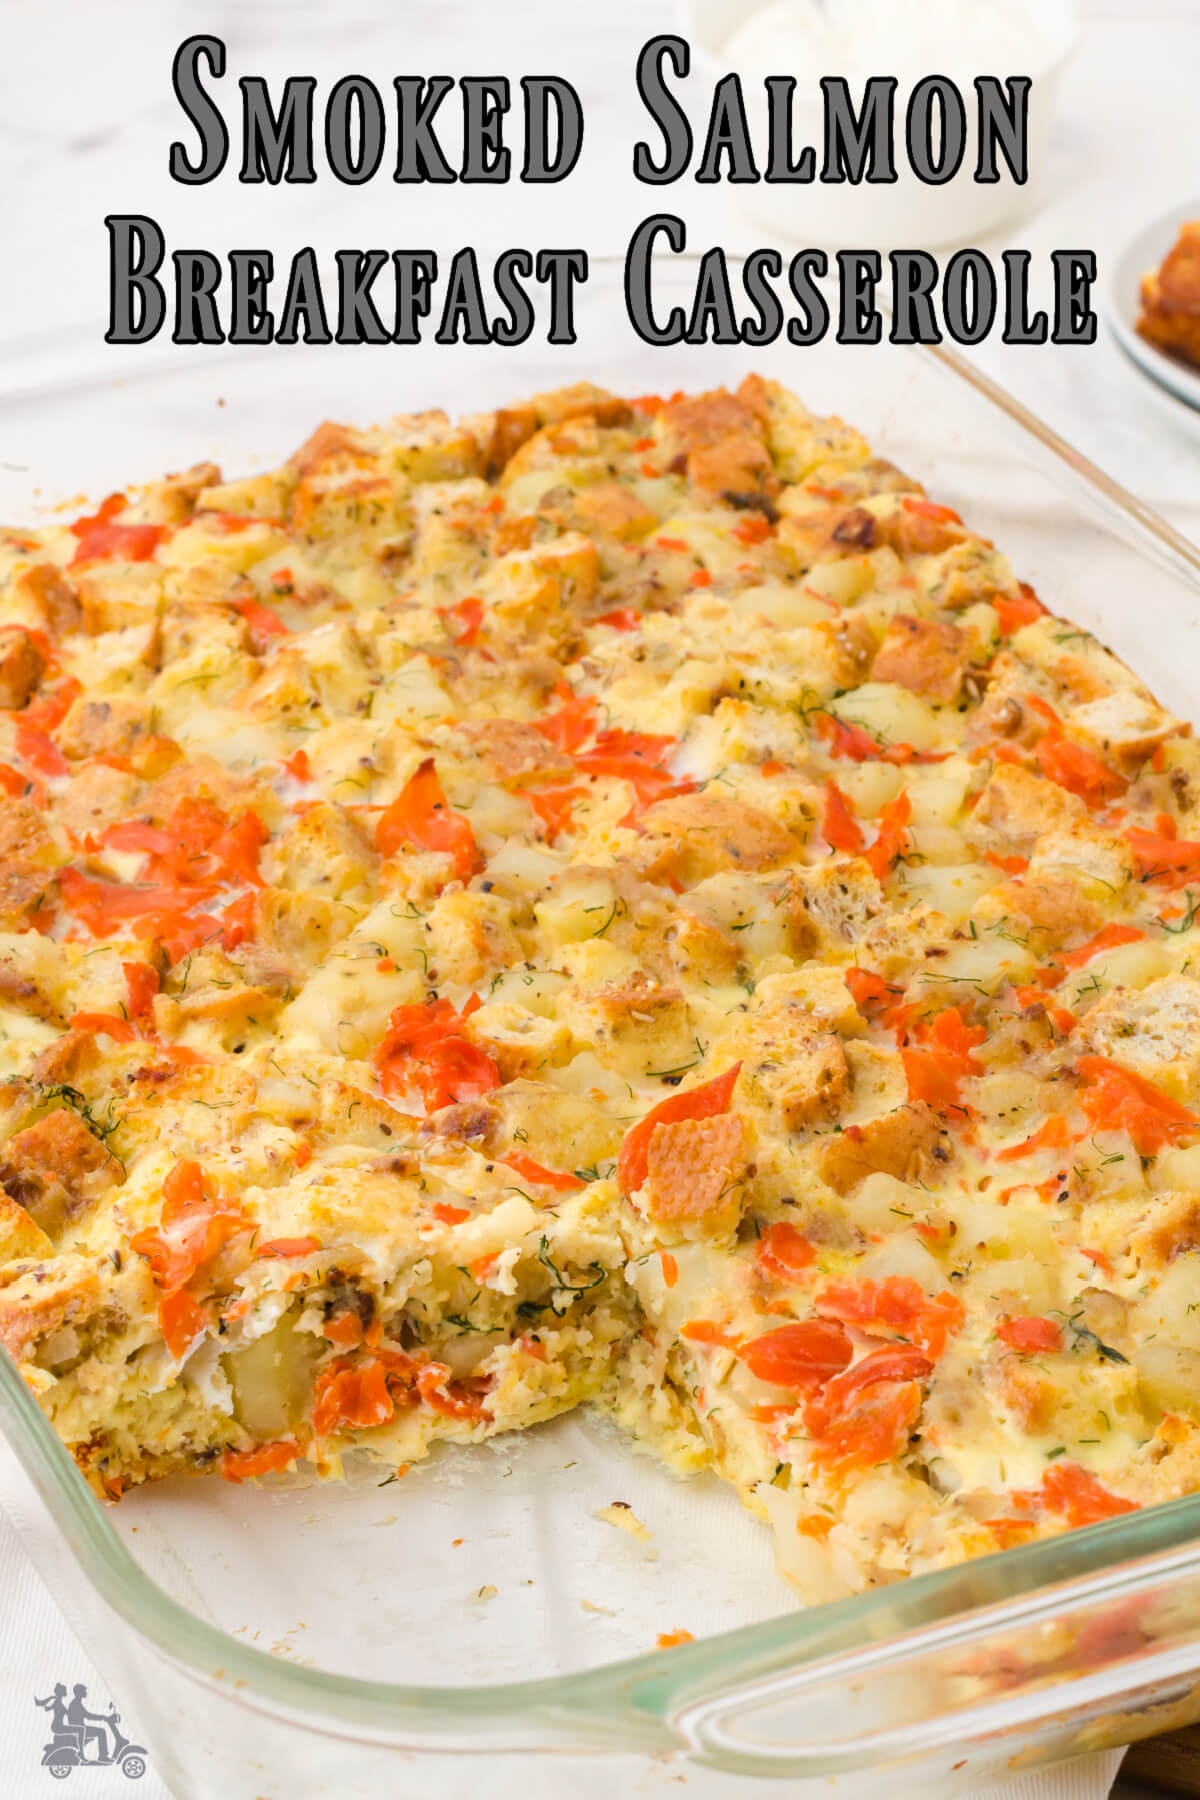 Lox and Egg Casserole Bake in a baking dish.